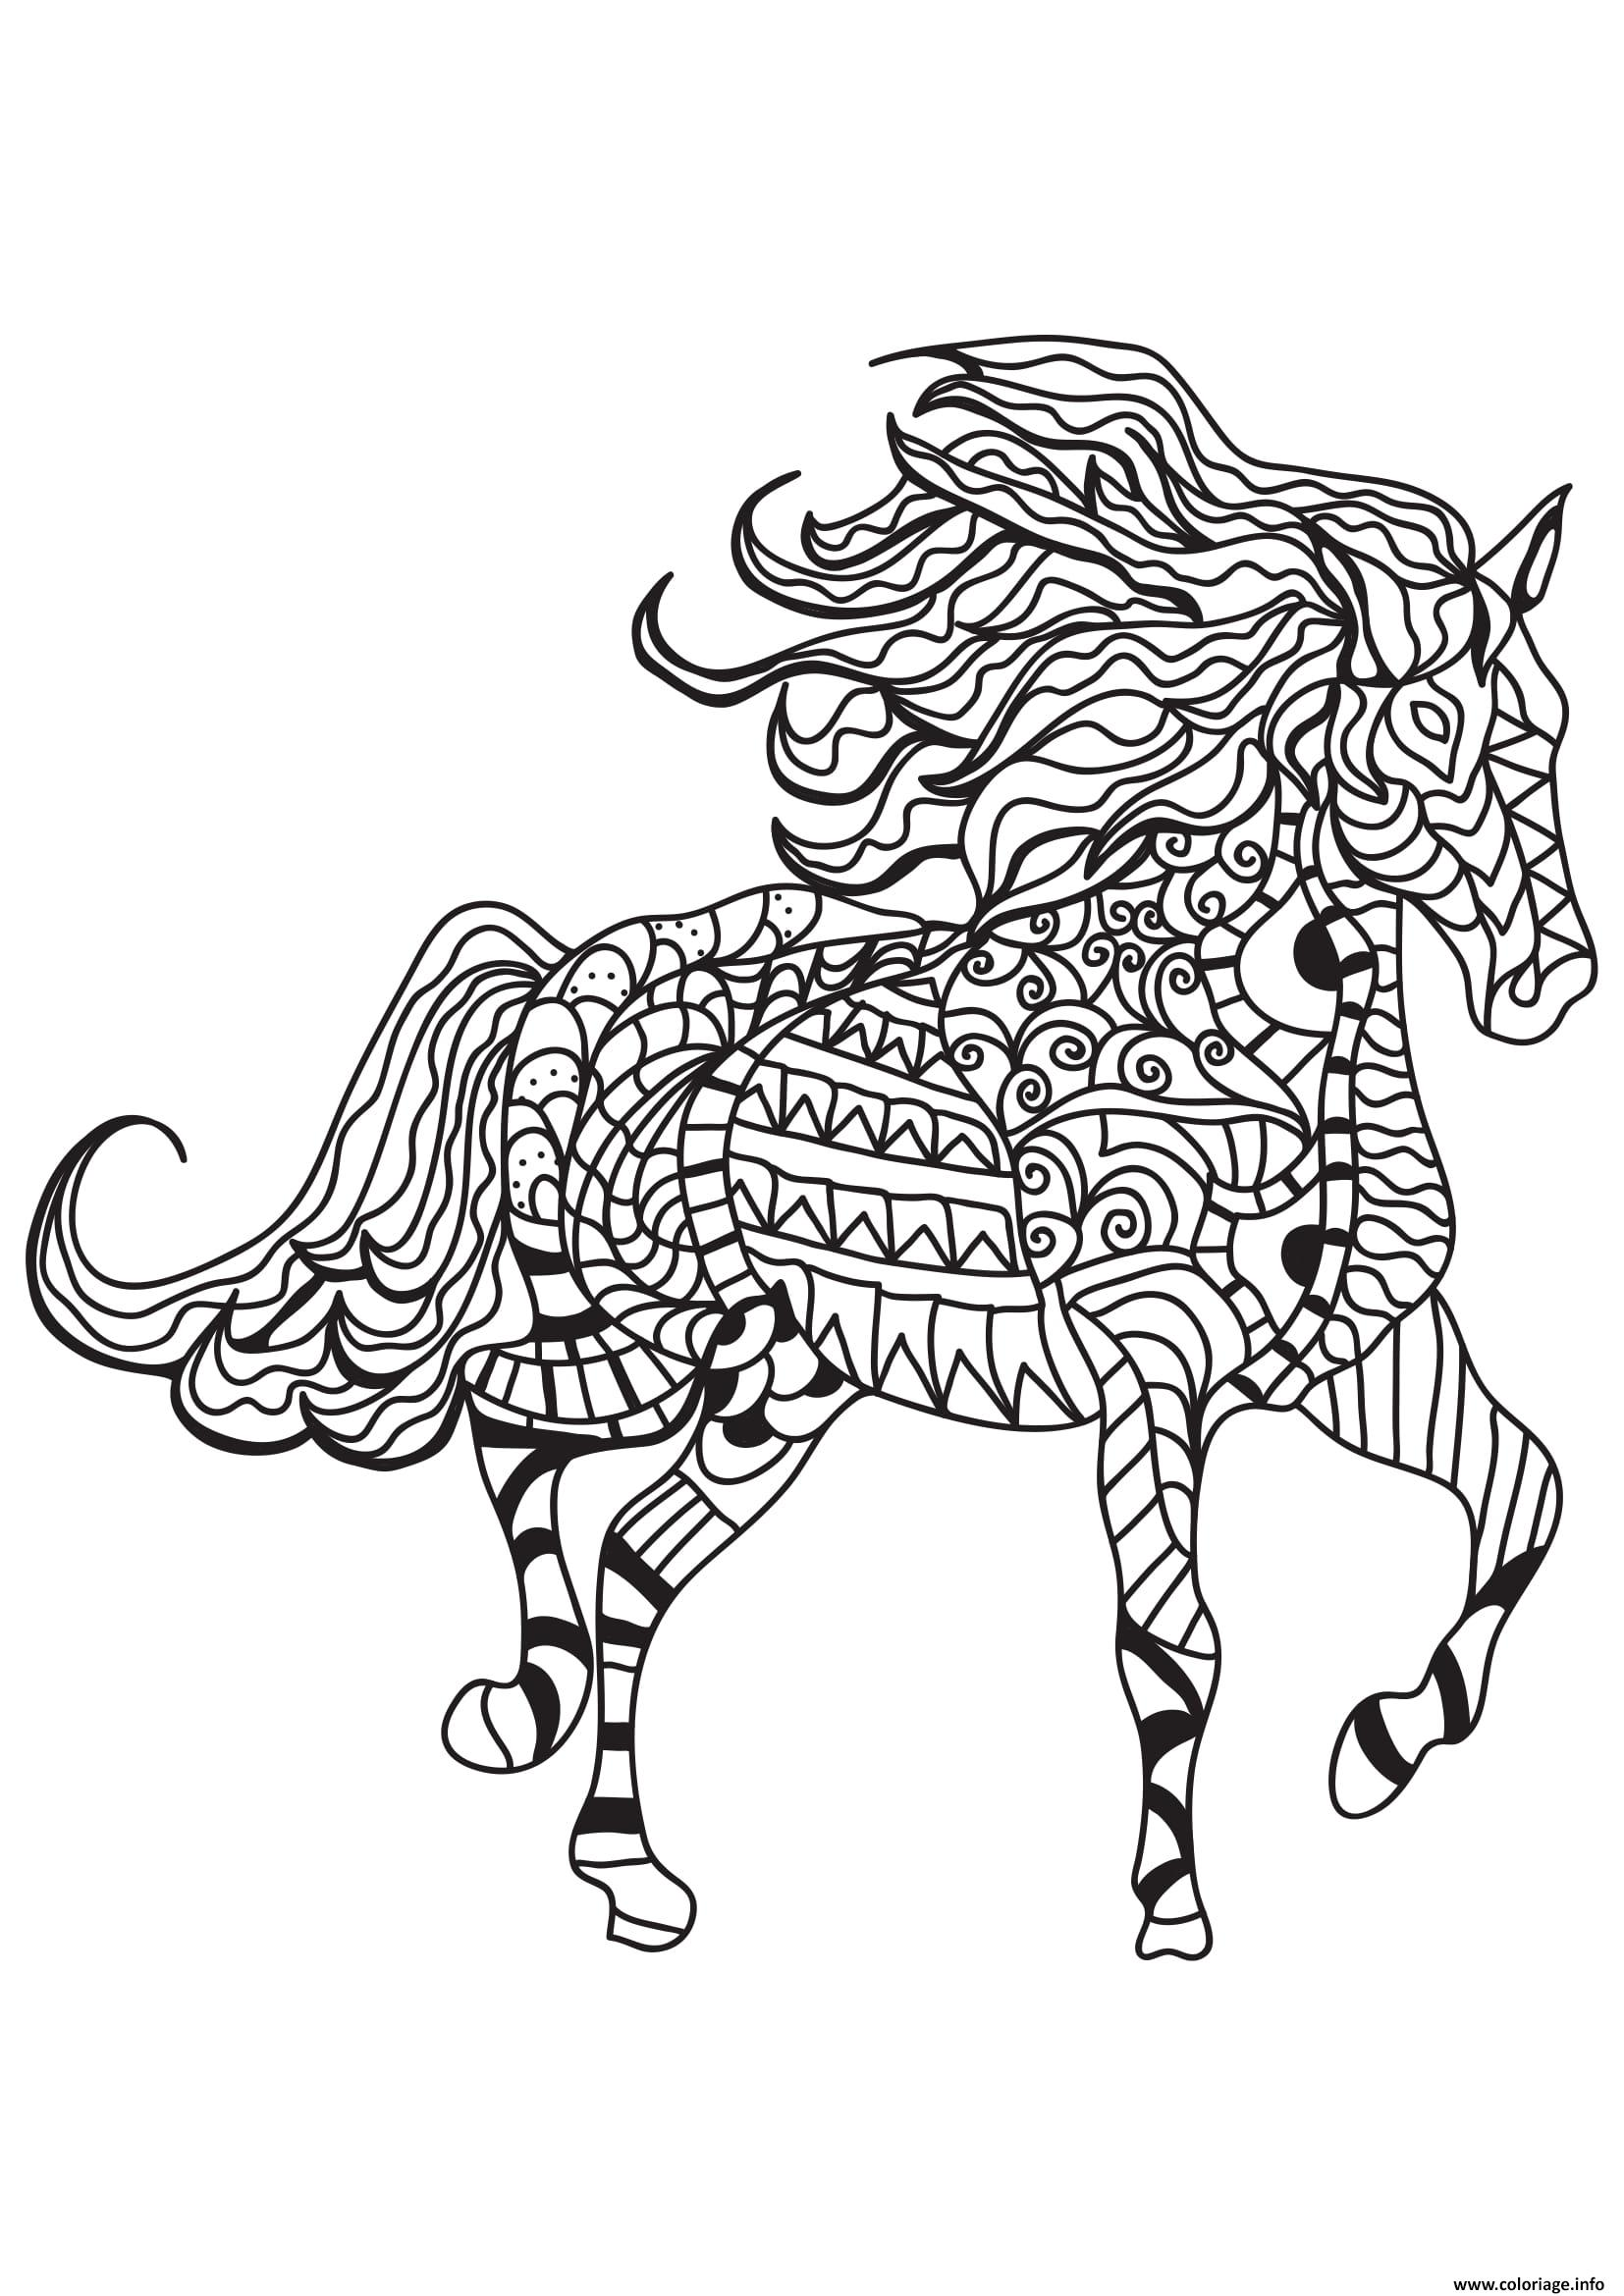 Coloriage adulte cheval zentangle 16 dessin - Chevaux a colorier et a imprimer ...